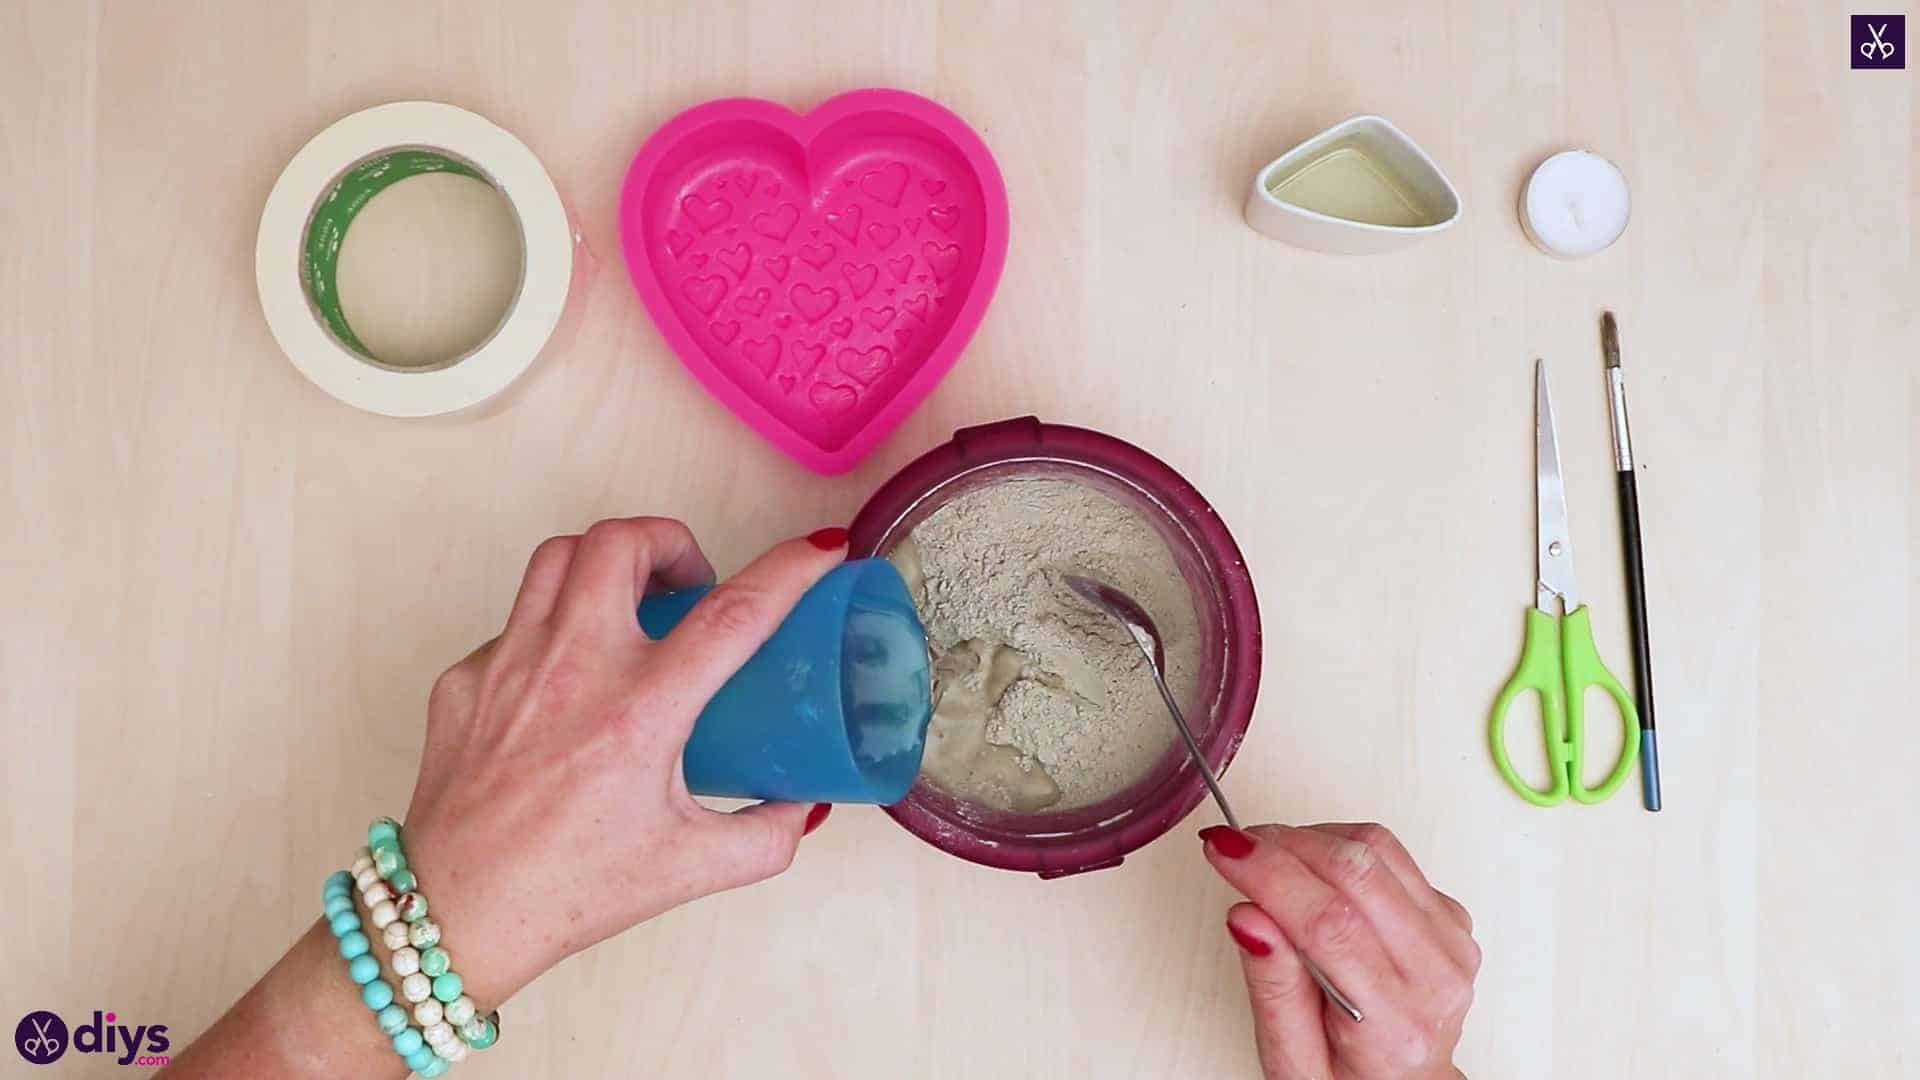 Diy concrete heart candle holder step 3